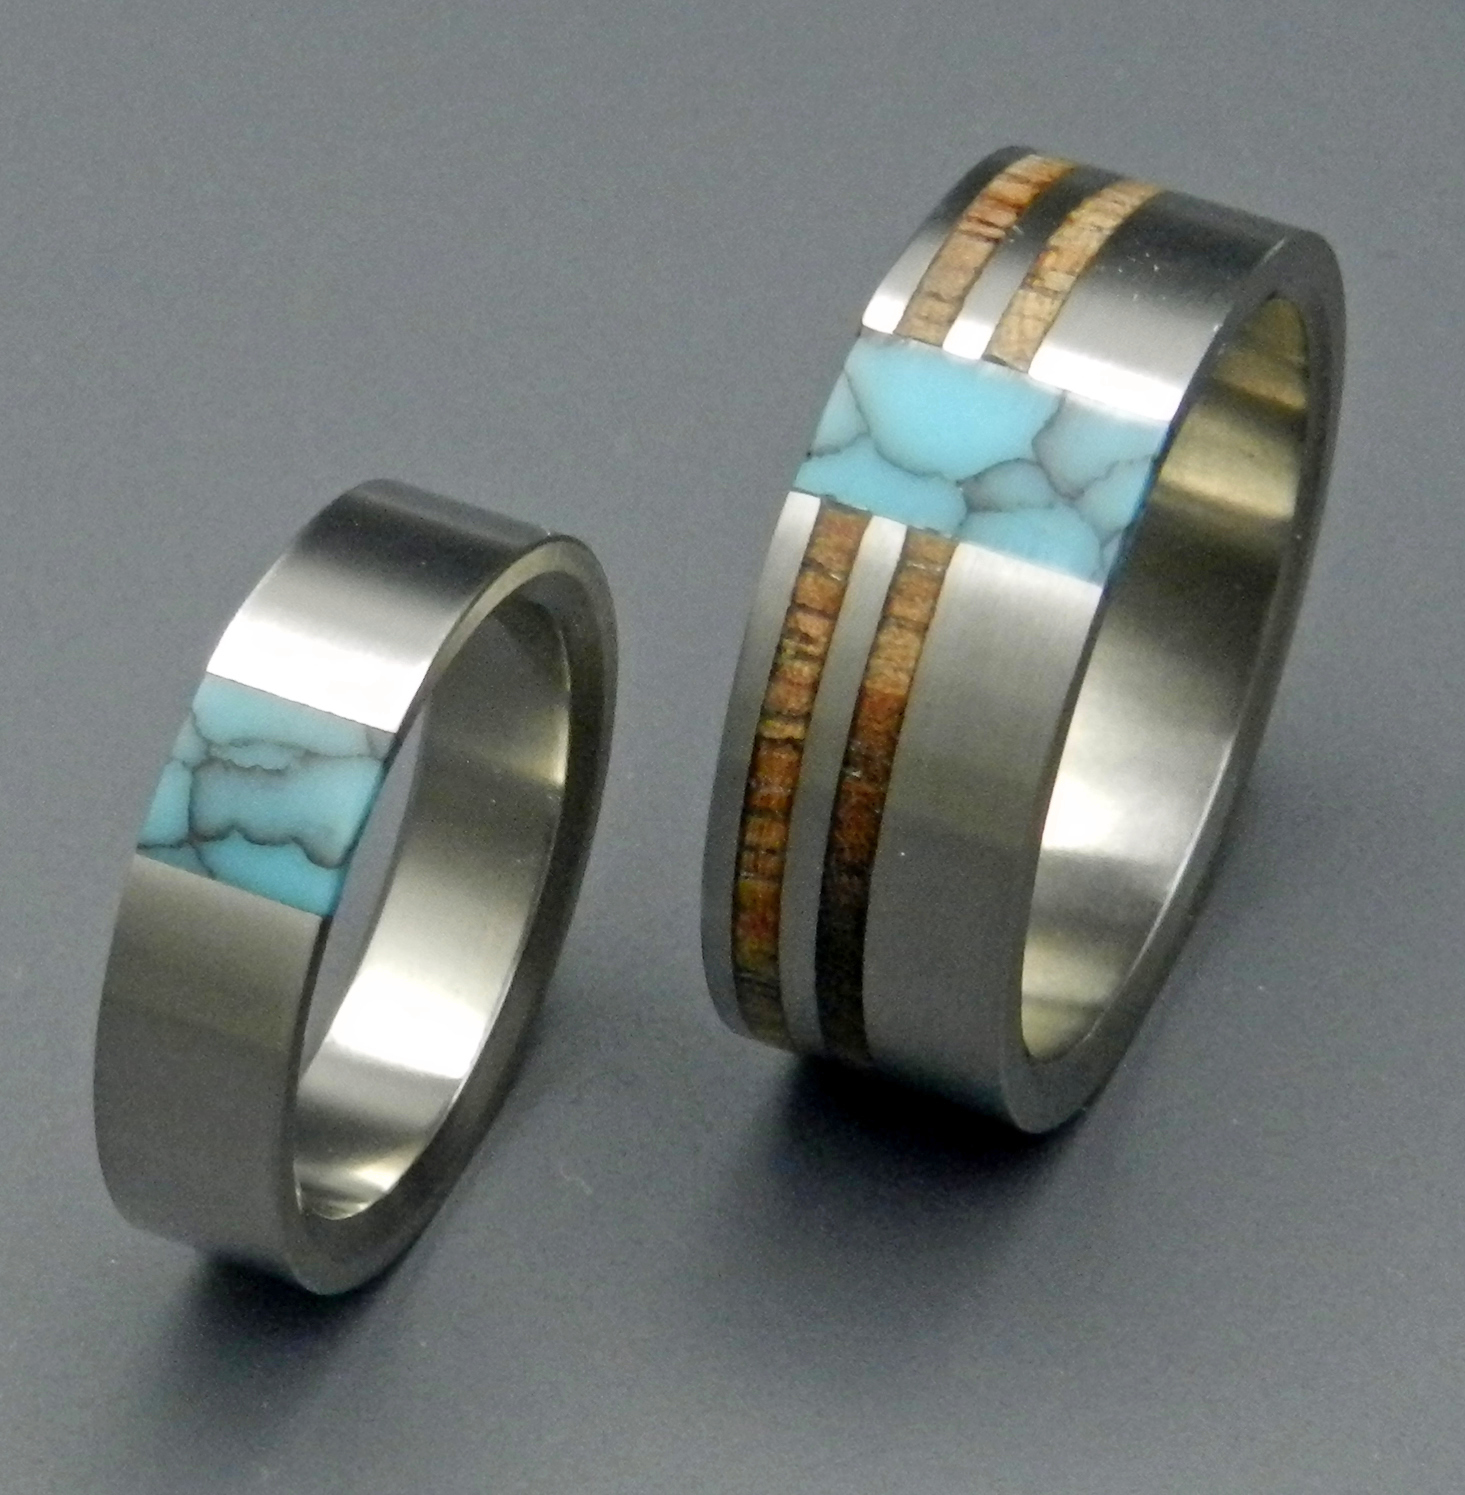 comet and constellation turquoise wedding titanium rings - Turquoise Wedding Rings